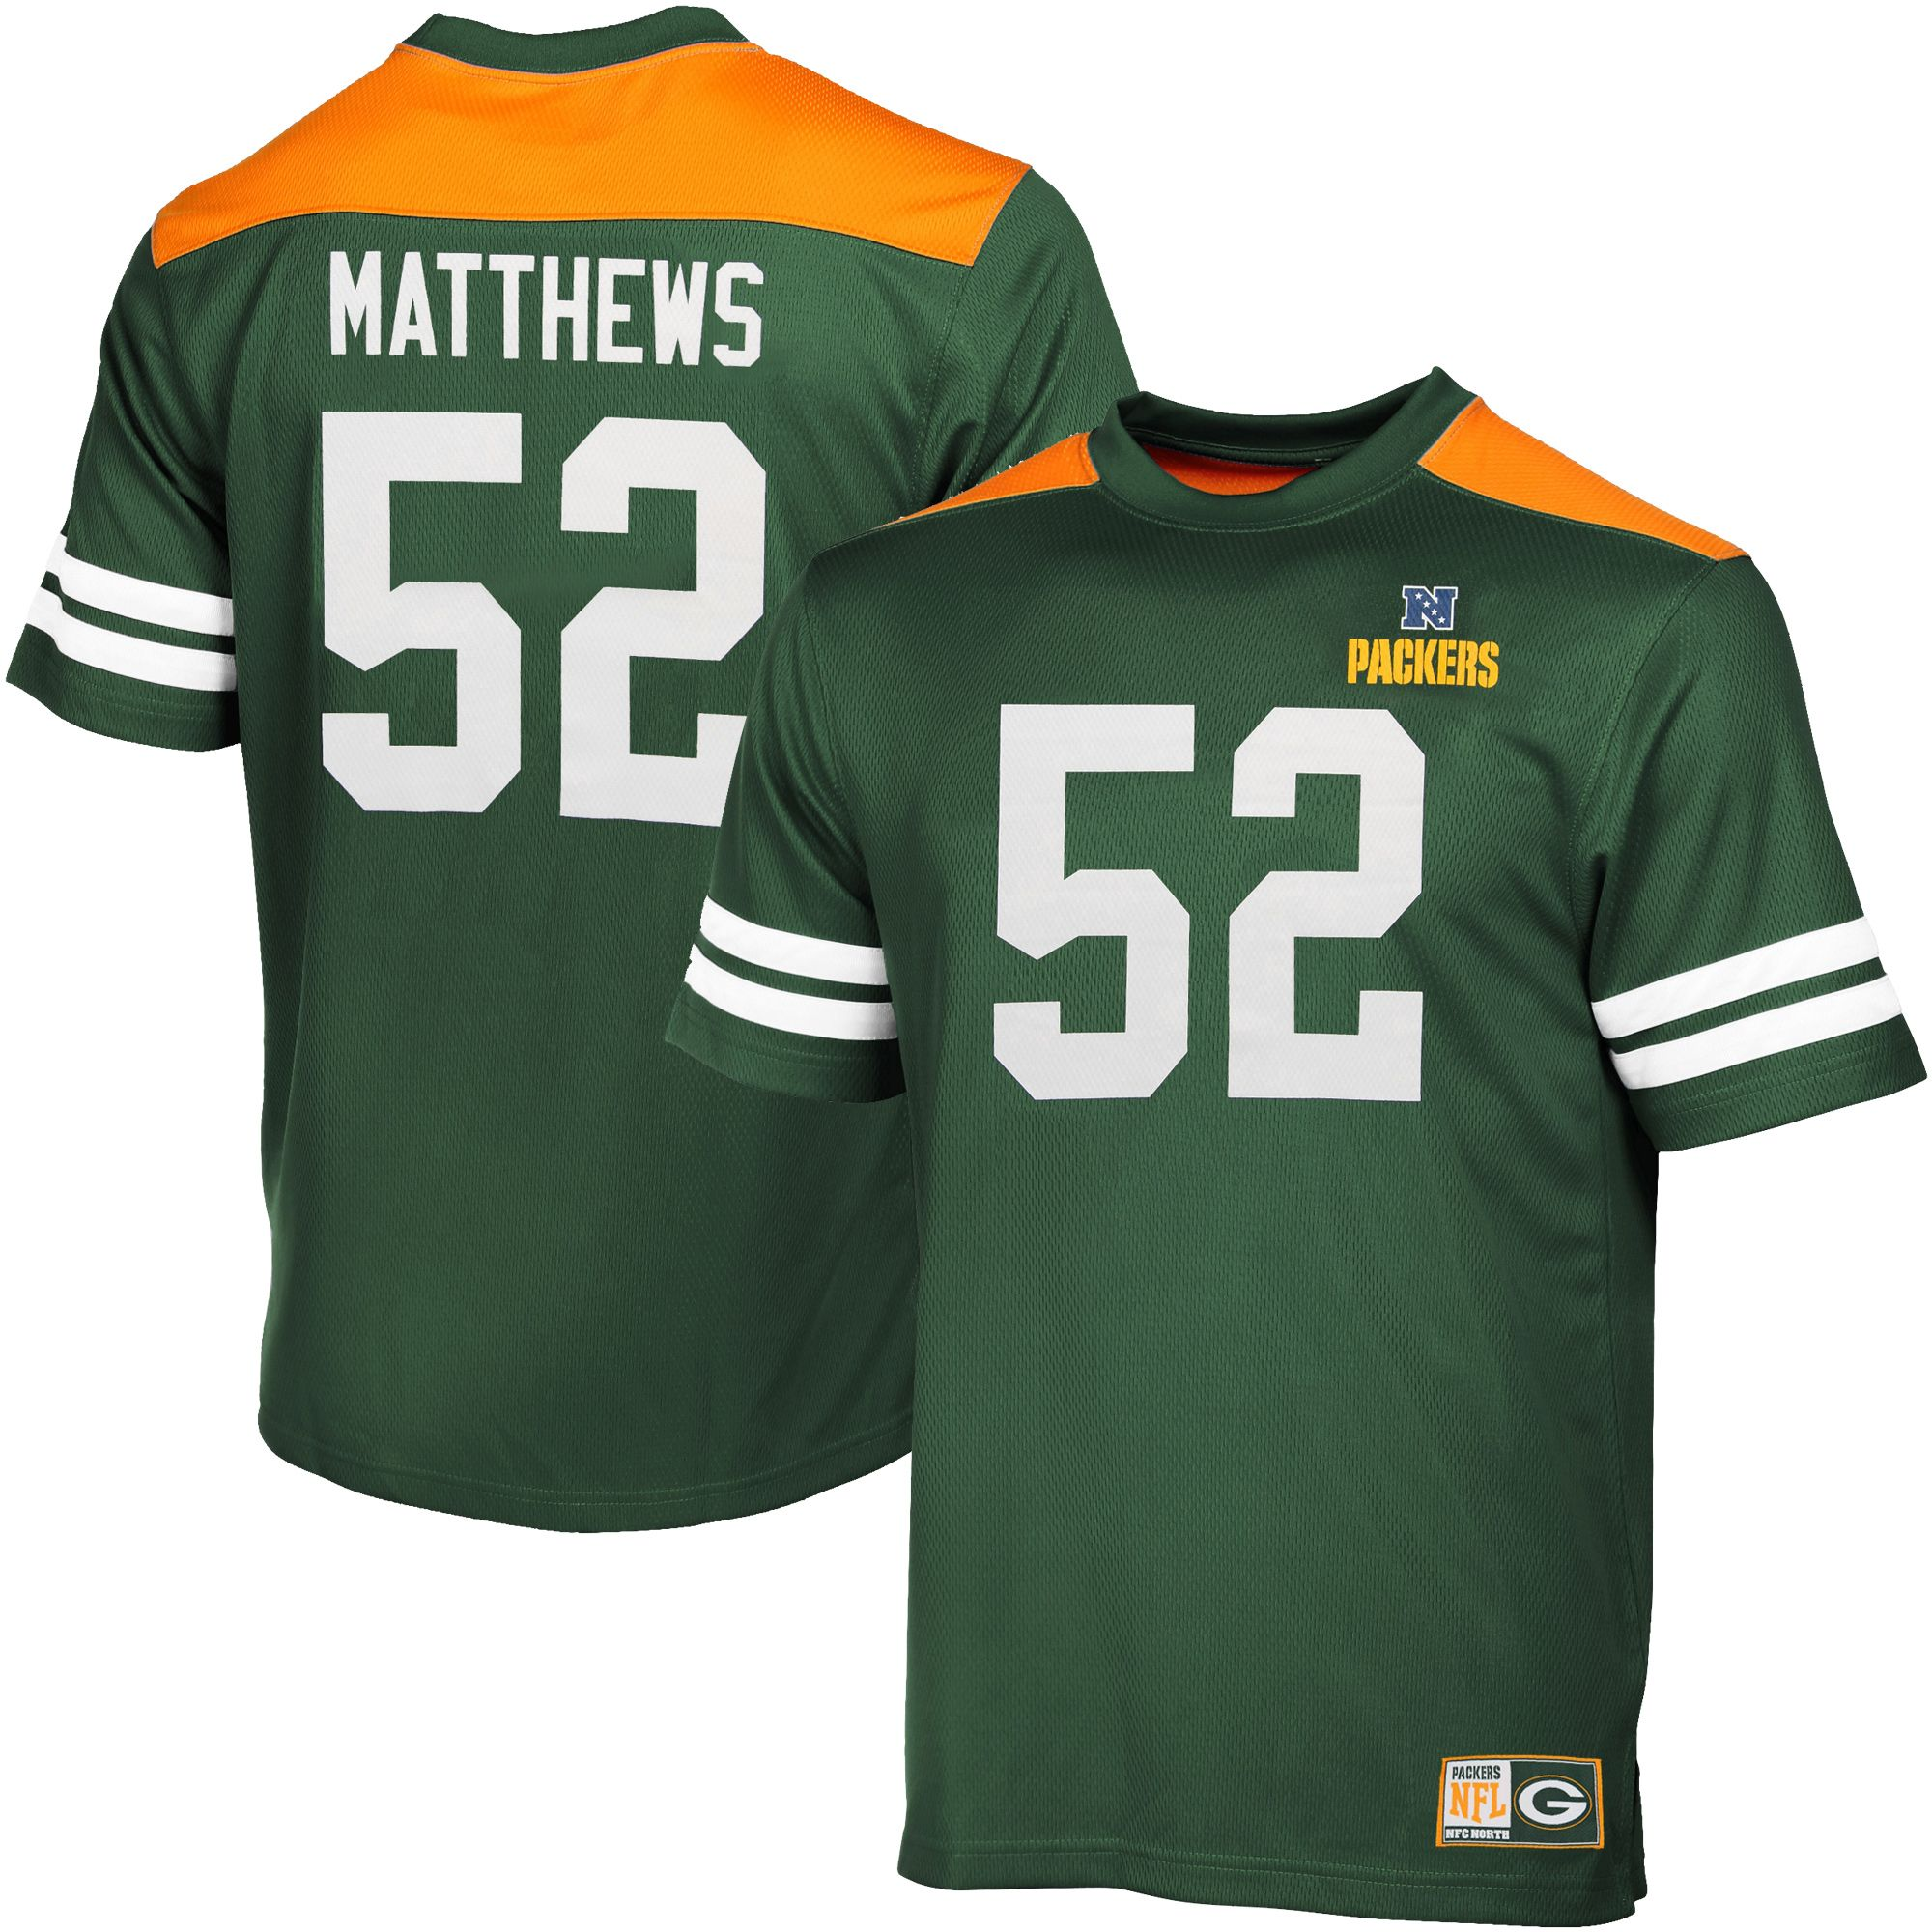 1c5df9434 NFL Clay Matthews Green Bay Packers Majestic Hashmark II T-Shirt - Green